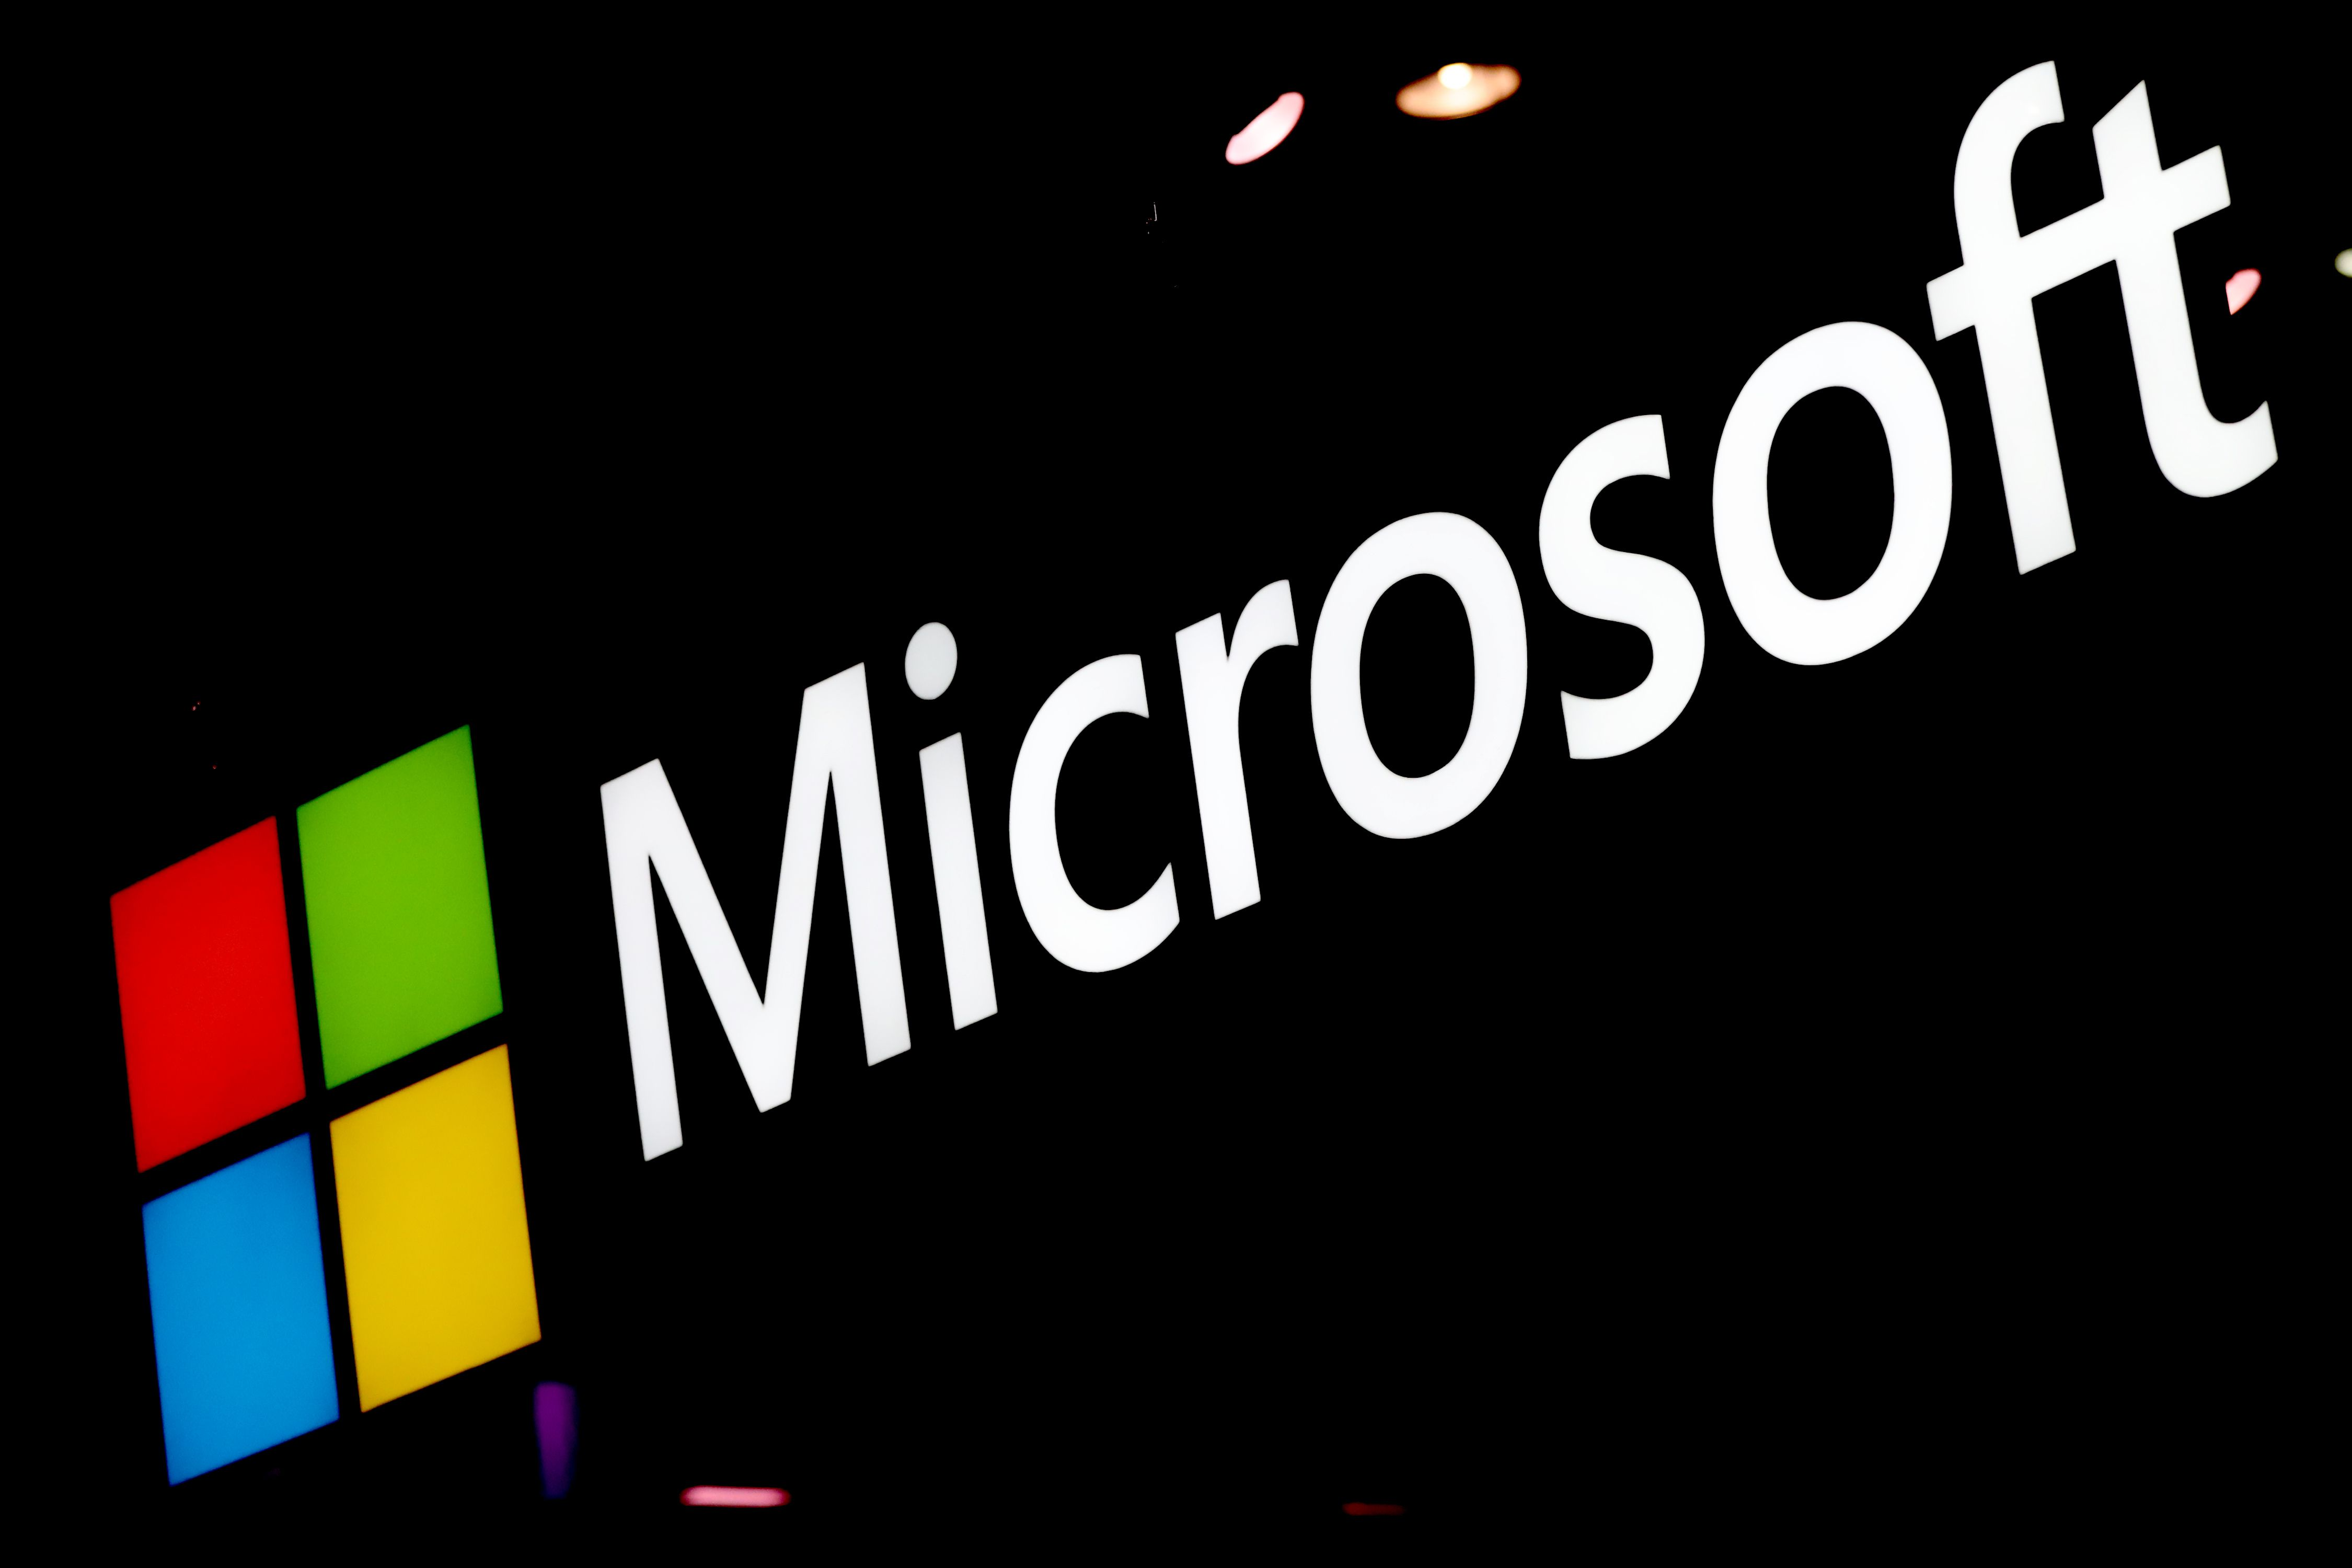 """Microsoft vows to become """"carbon negative"""" by 2030 - Axios"""